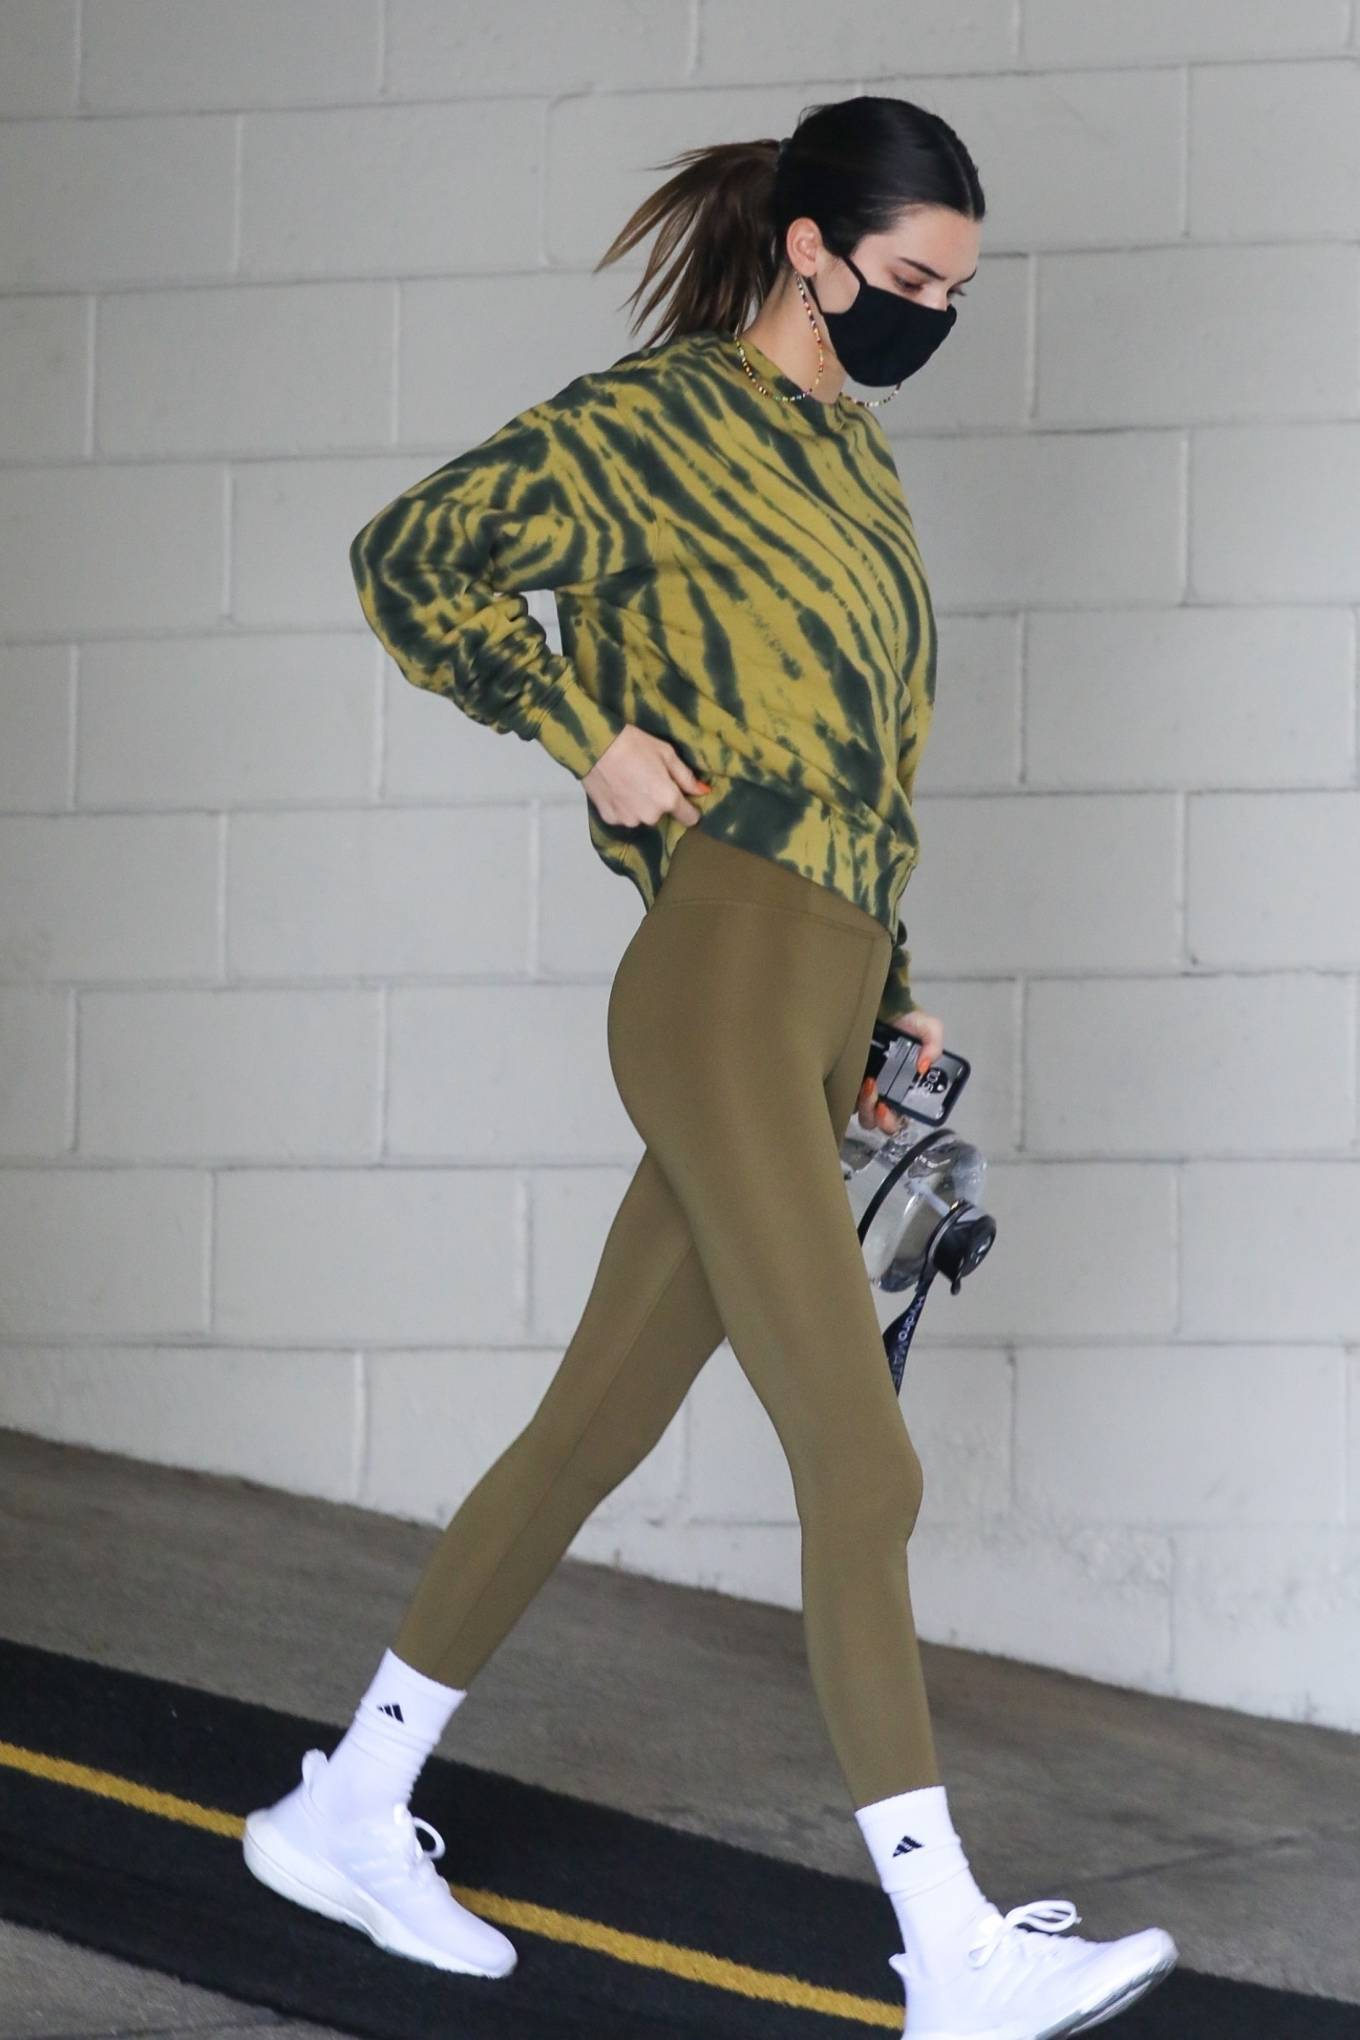 Kendall Jenner wearing a oversized golden sweatshirt with a cotton material, extra long sleeves and a crew neck